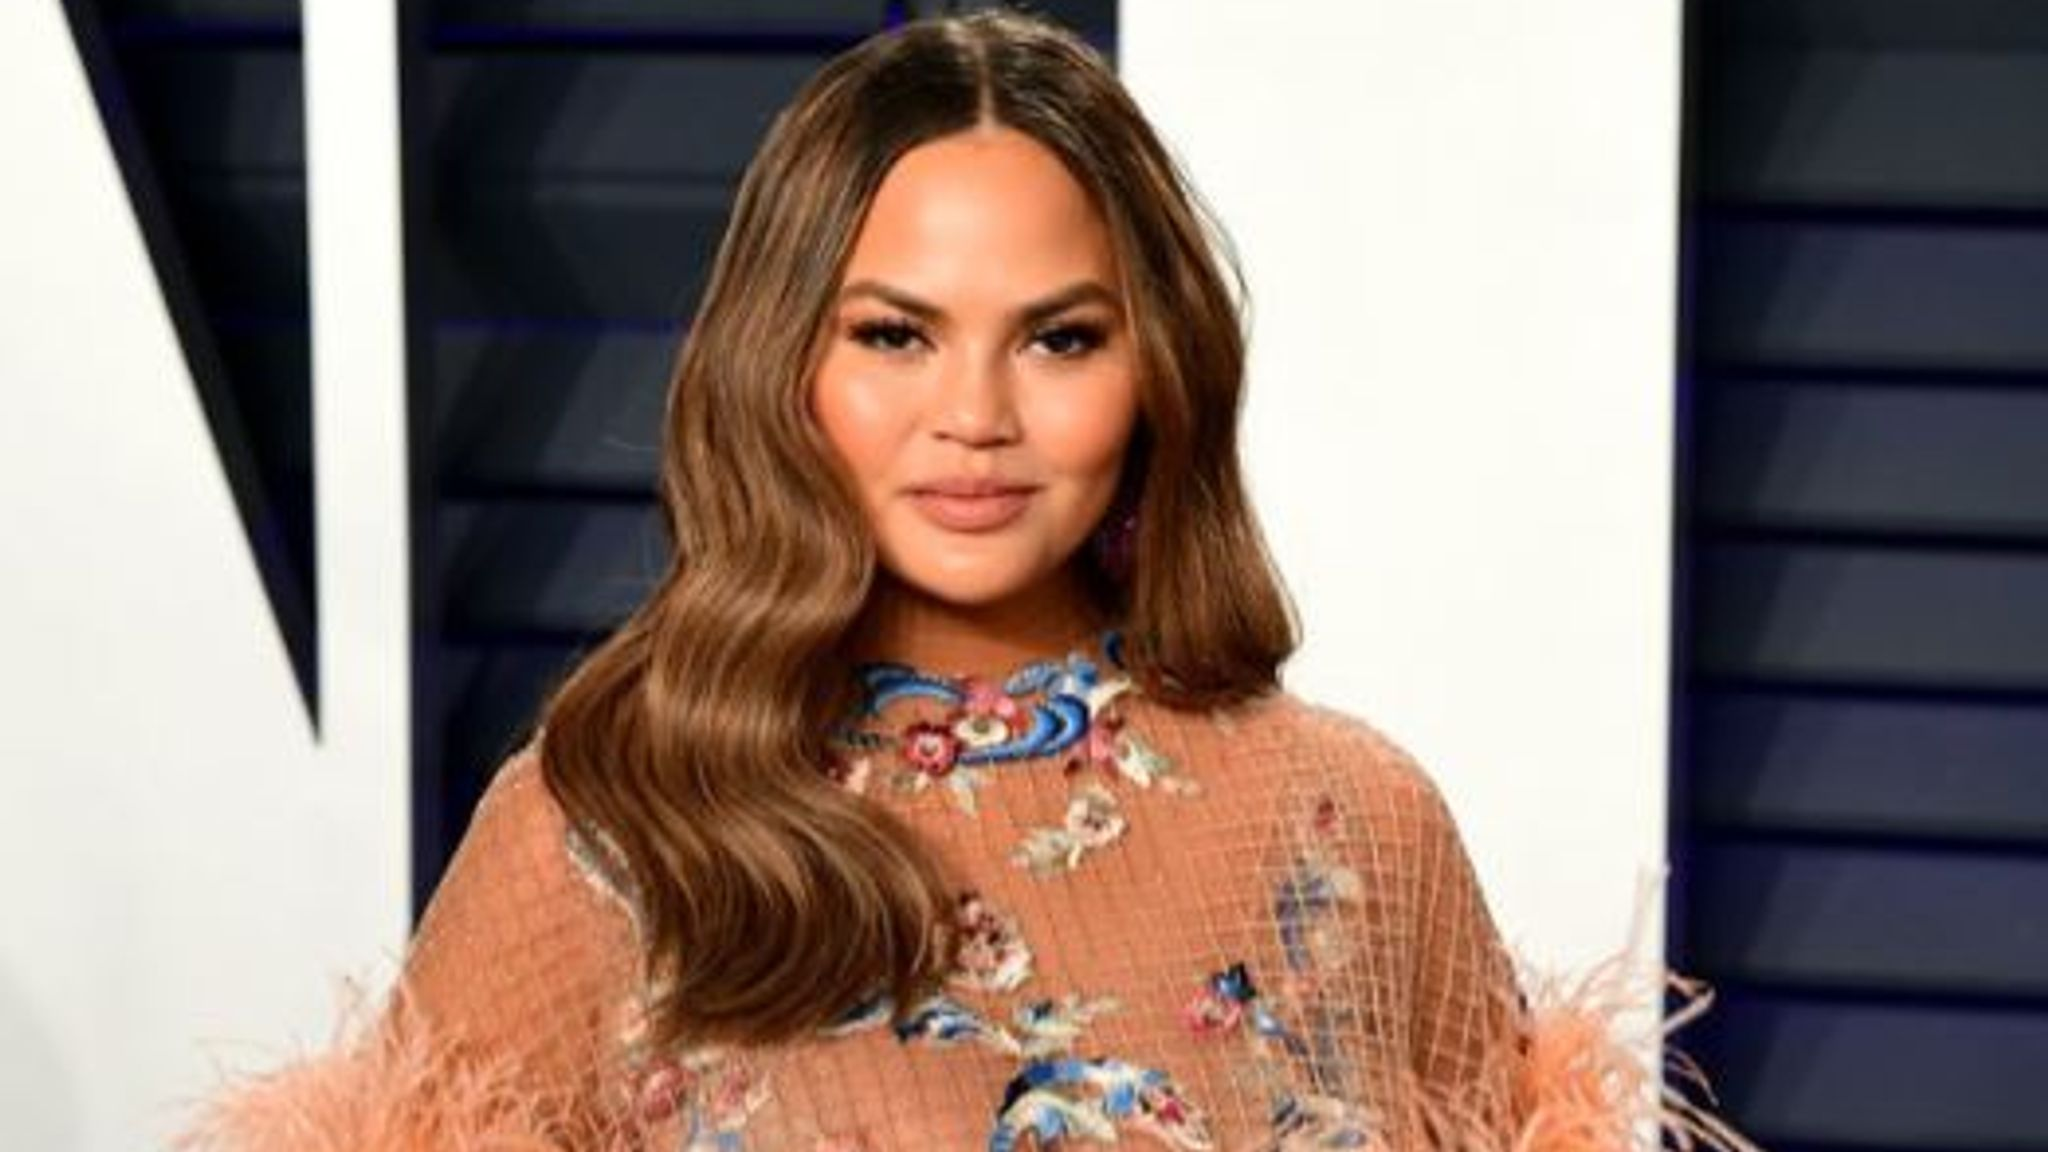 Chrissy Teigen Suffers Miscarriage After Many Pregnancy Complications – Check Out The Heartbreaking Message And Pictures